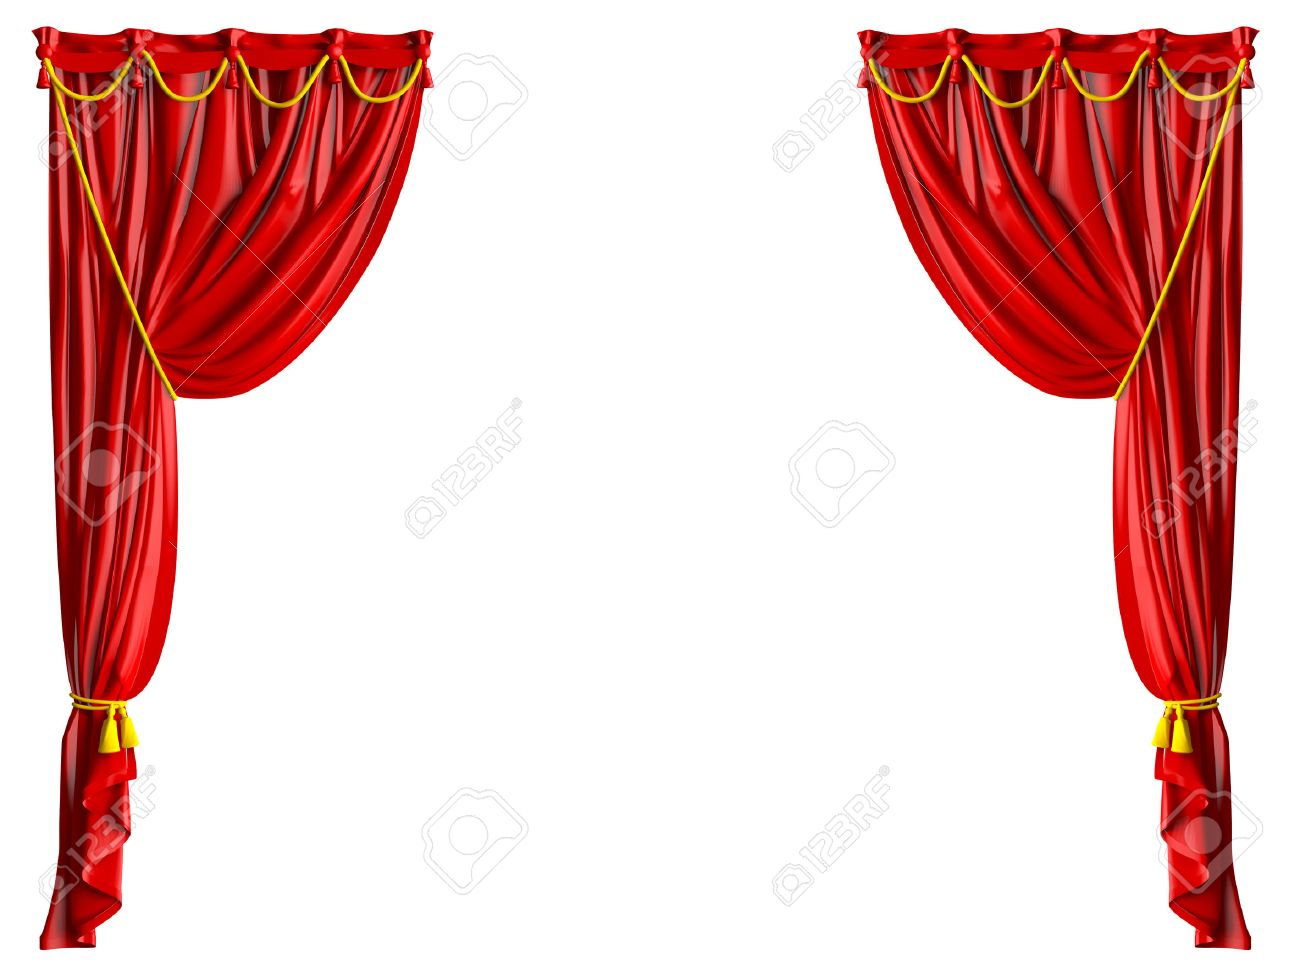 Royalty free or white curtain background drapes royalty free stock - Red Shiny Theater Curtains And Yellow Ropes Isolated On White Background Stock Photo